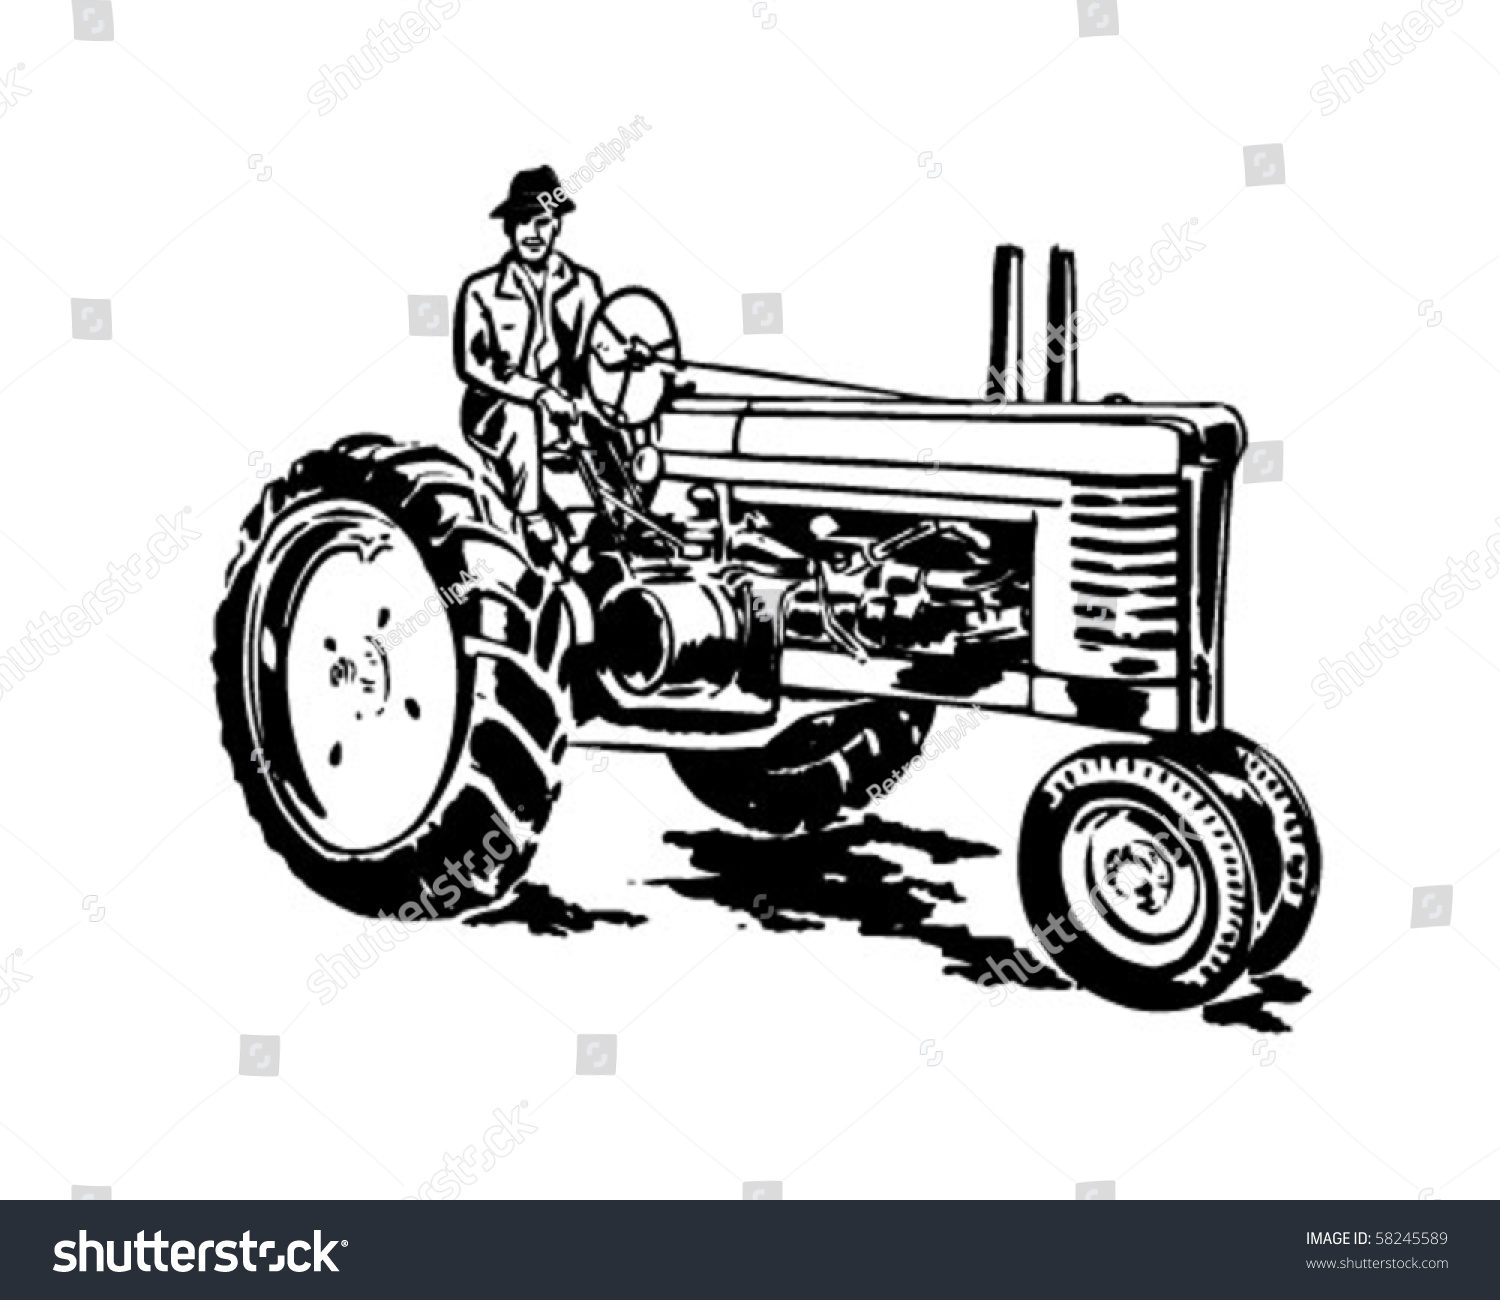 vintage tractor clipart - photo #42